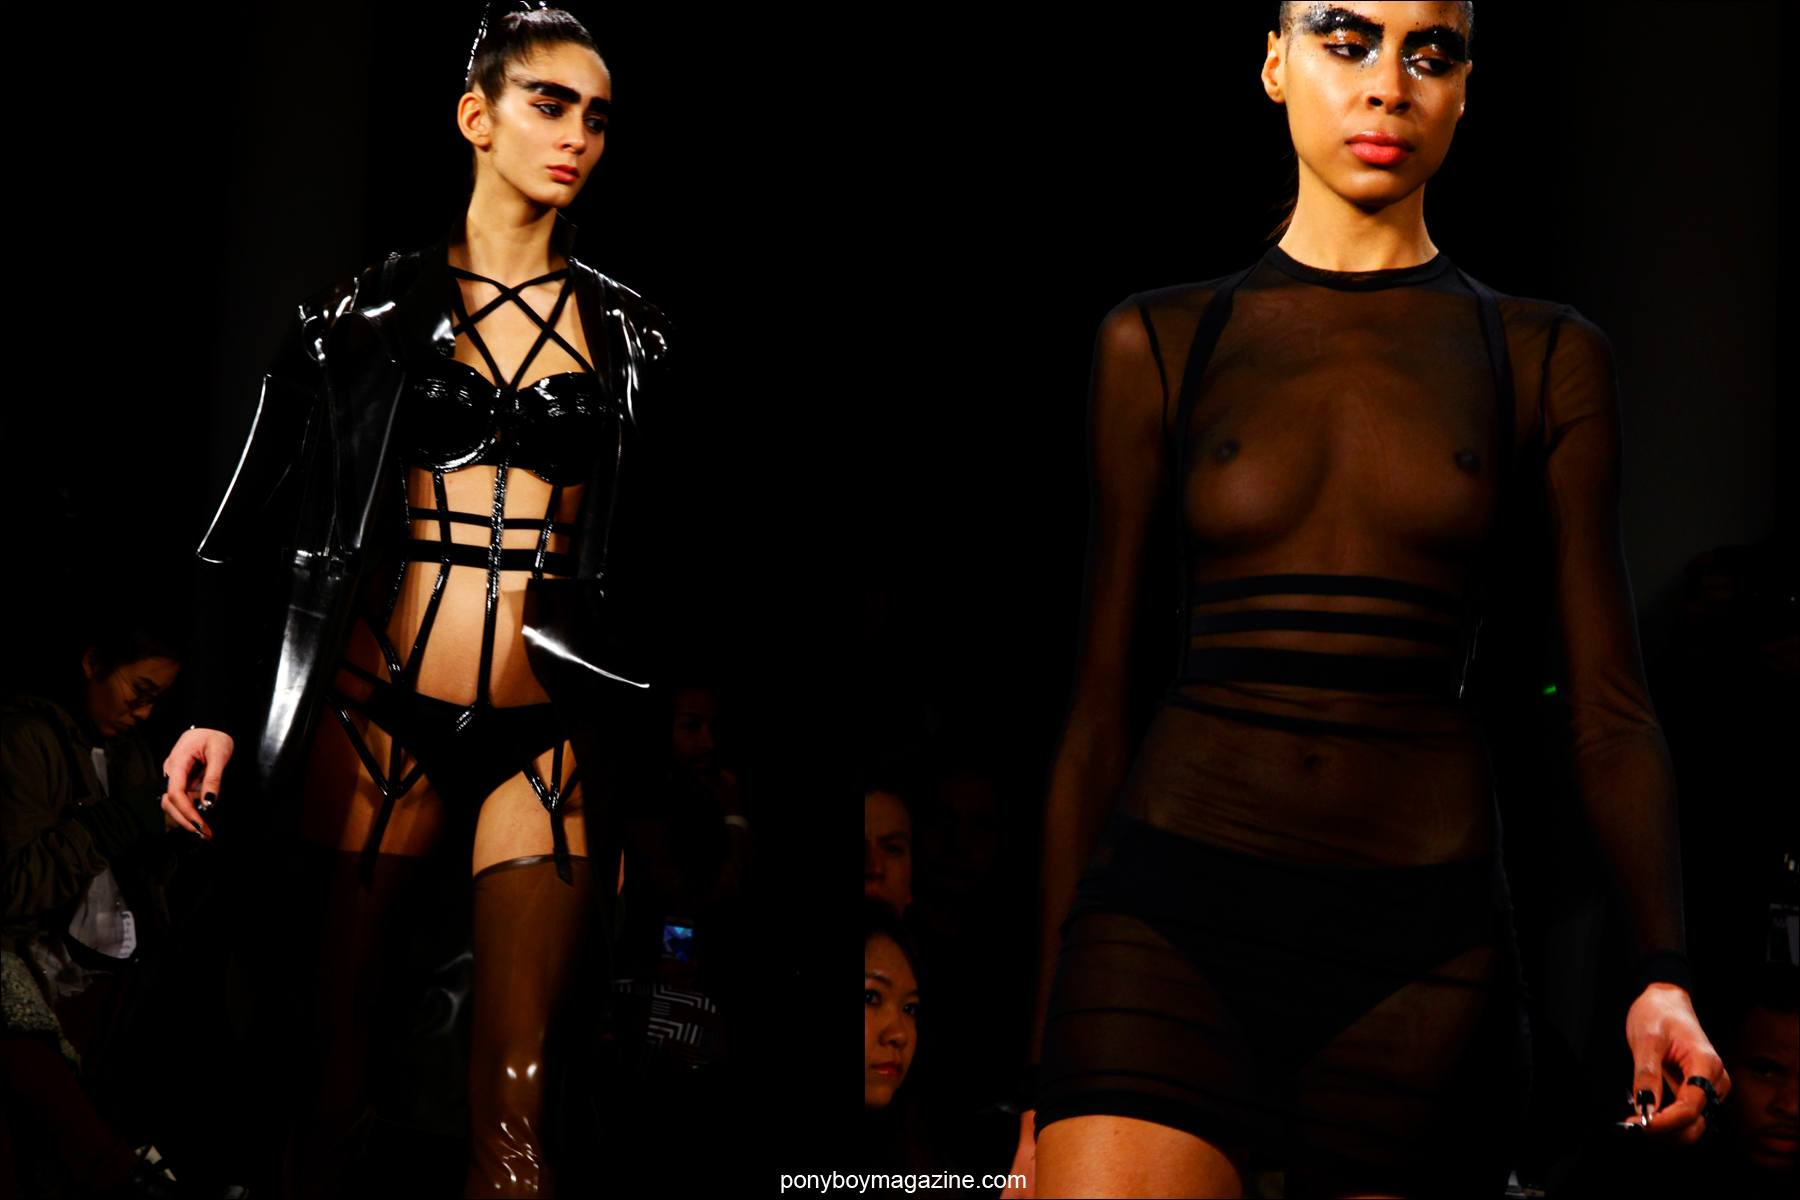 Futuristic fetish inspired designs at Chromat F/W15 collection in New York. Photographs by Alexander Thompson for Ponyboy magazine.